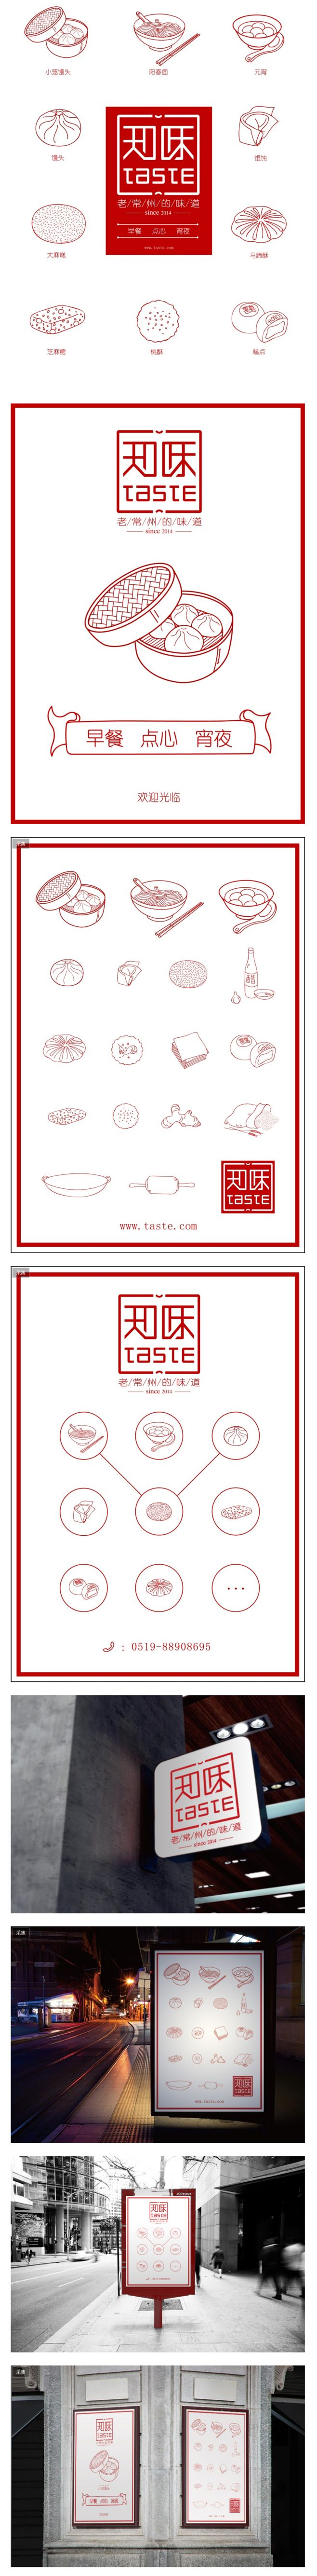 #graphicdesign #red #lines #food